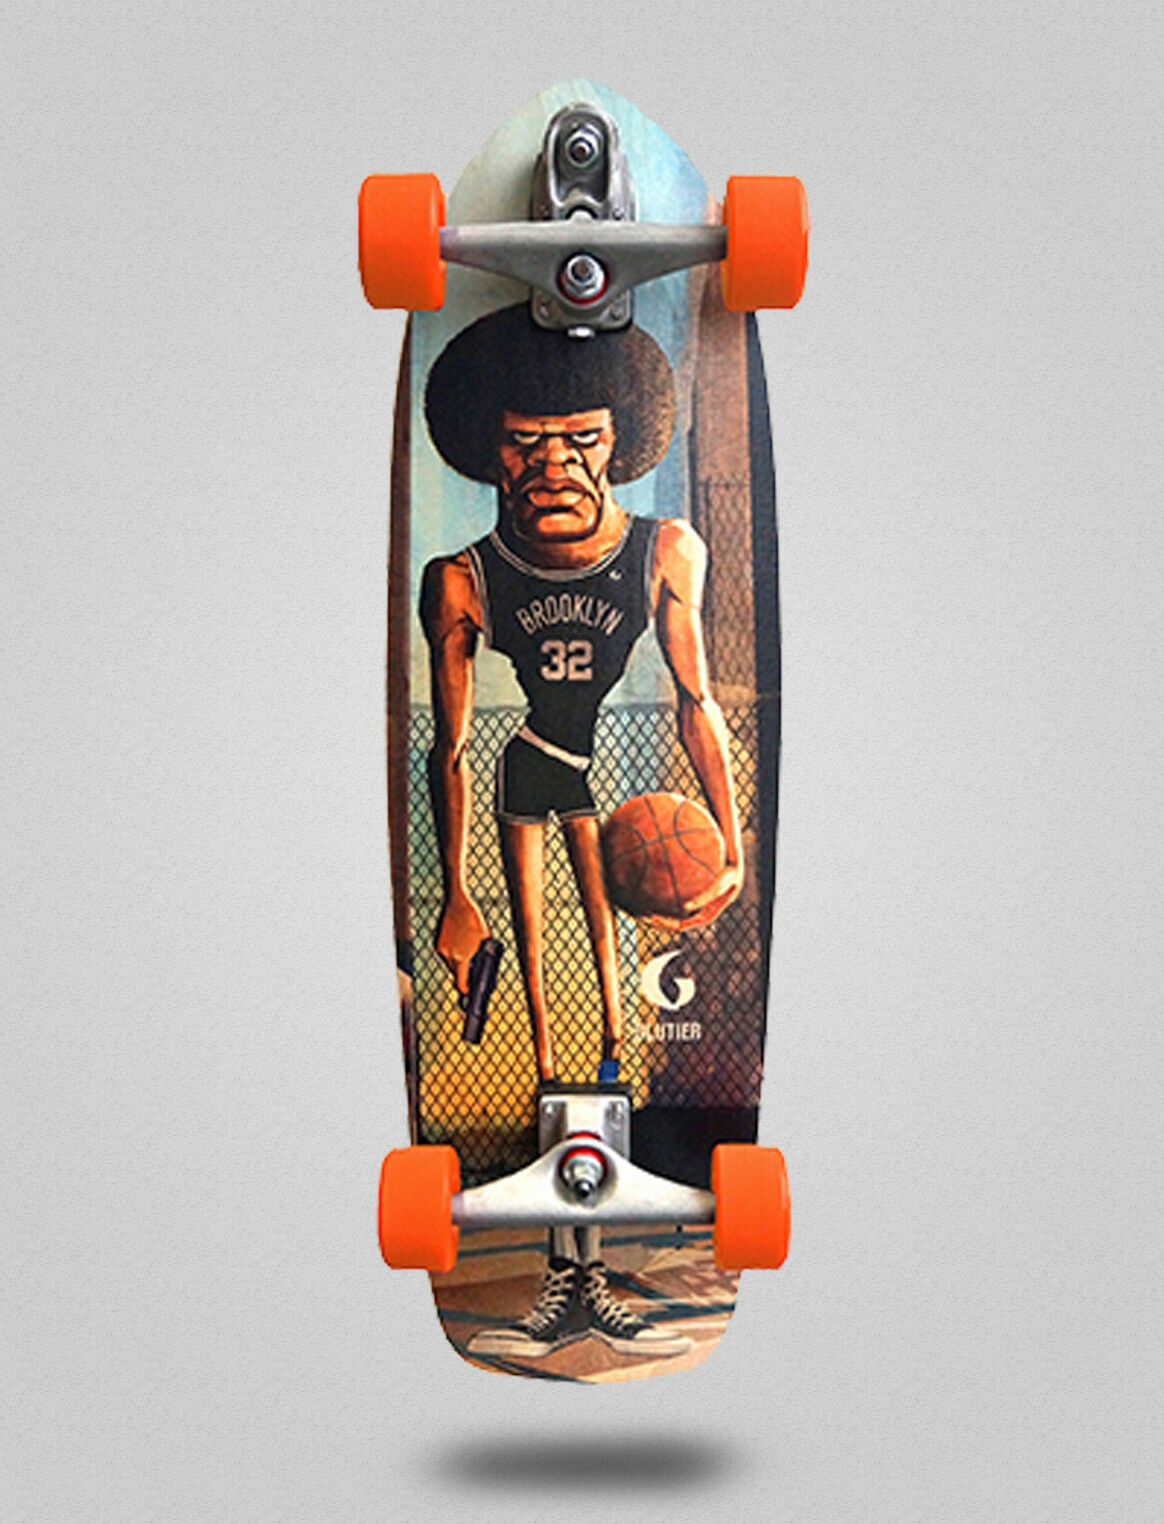 Surf skate GLUTIER with with with T12 TRUCKS. Surfskate Mamalote 34 2fc515